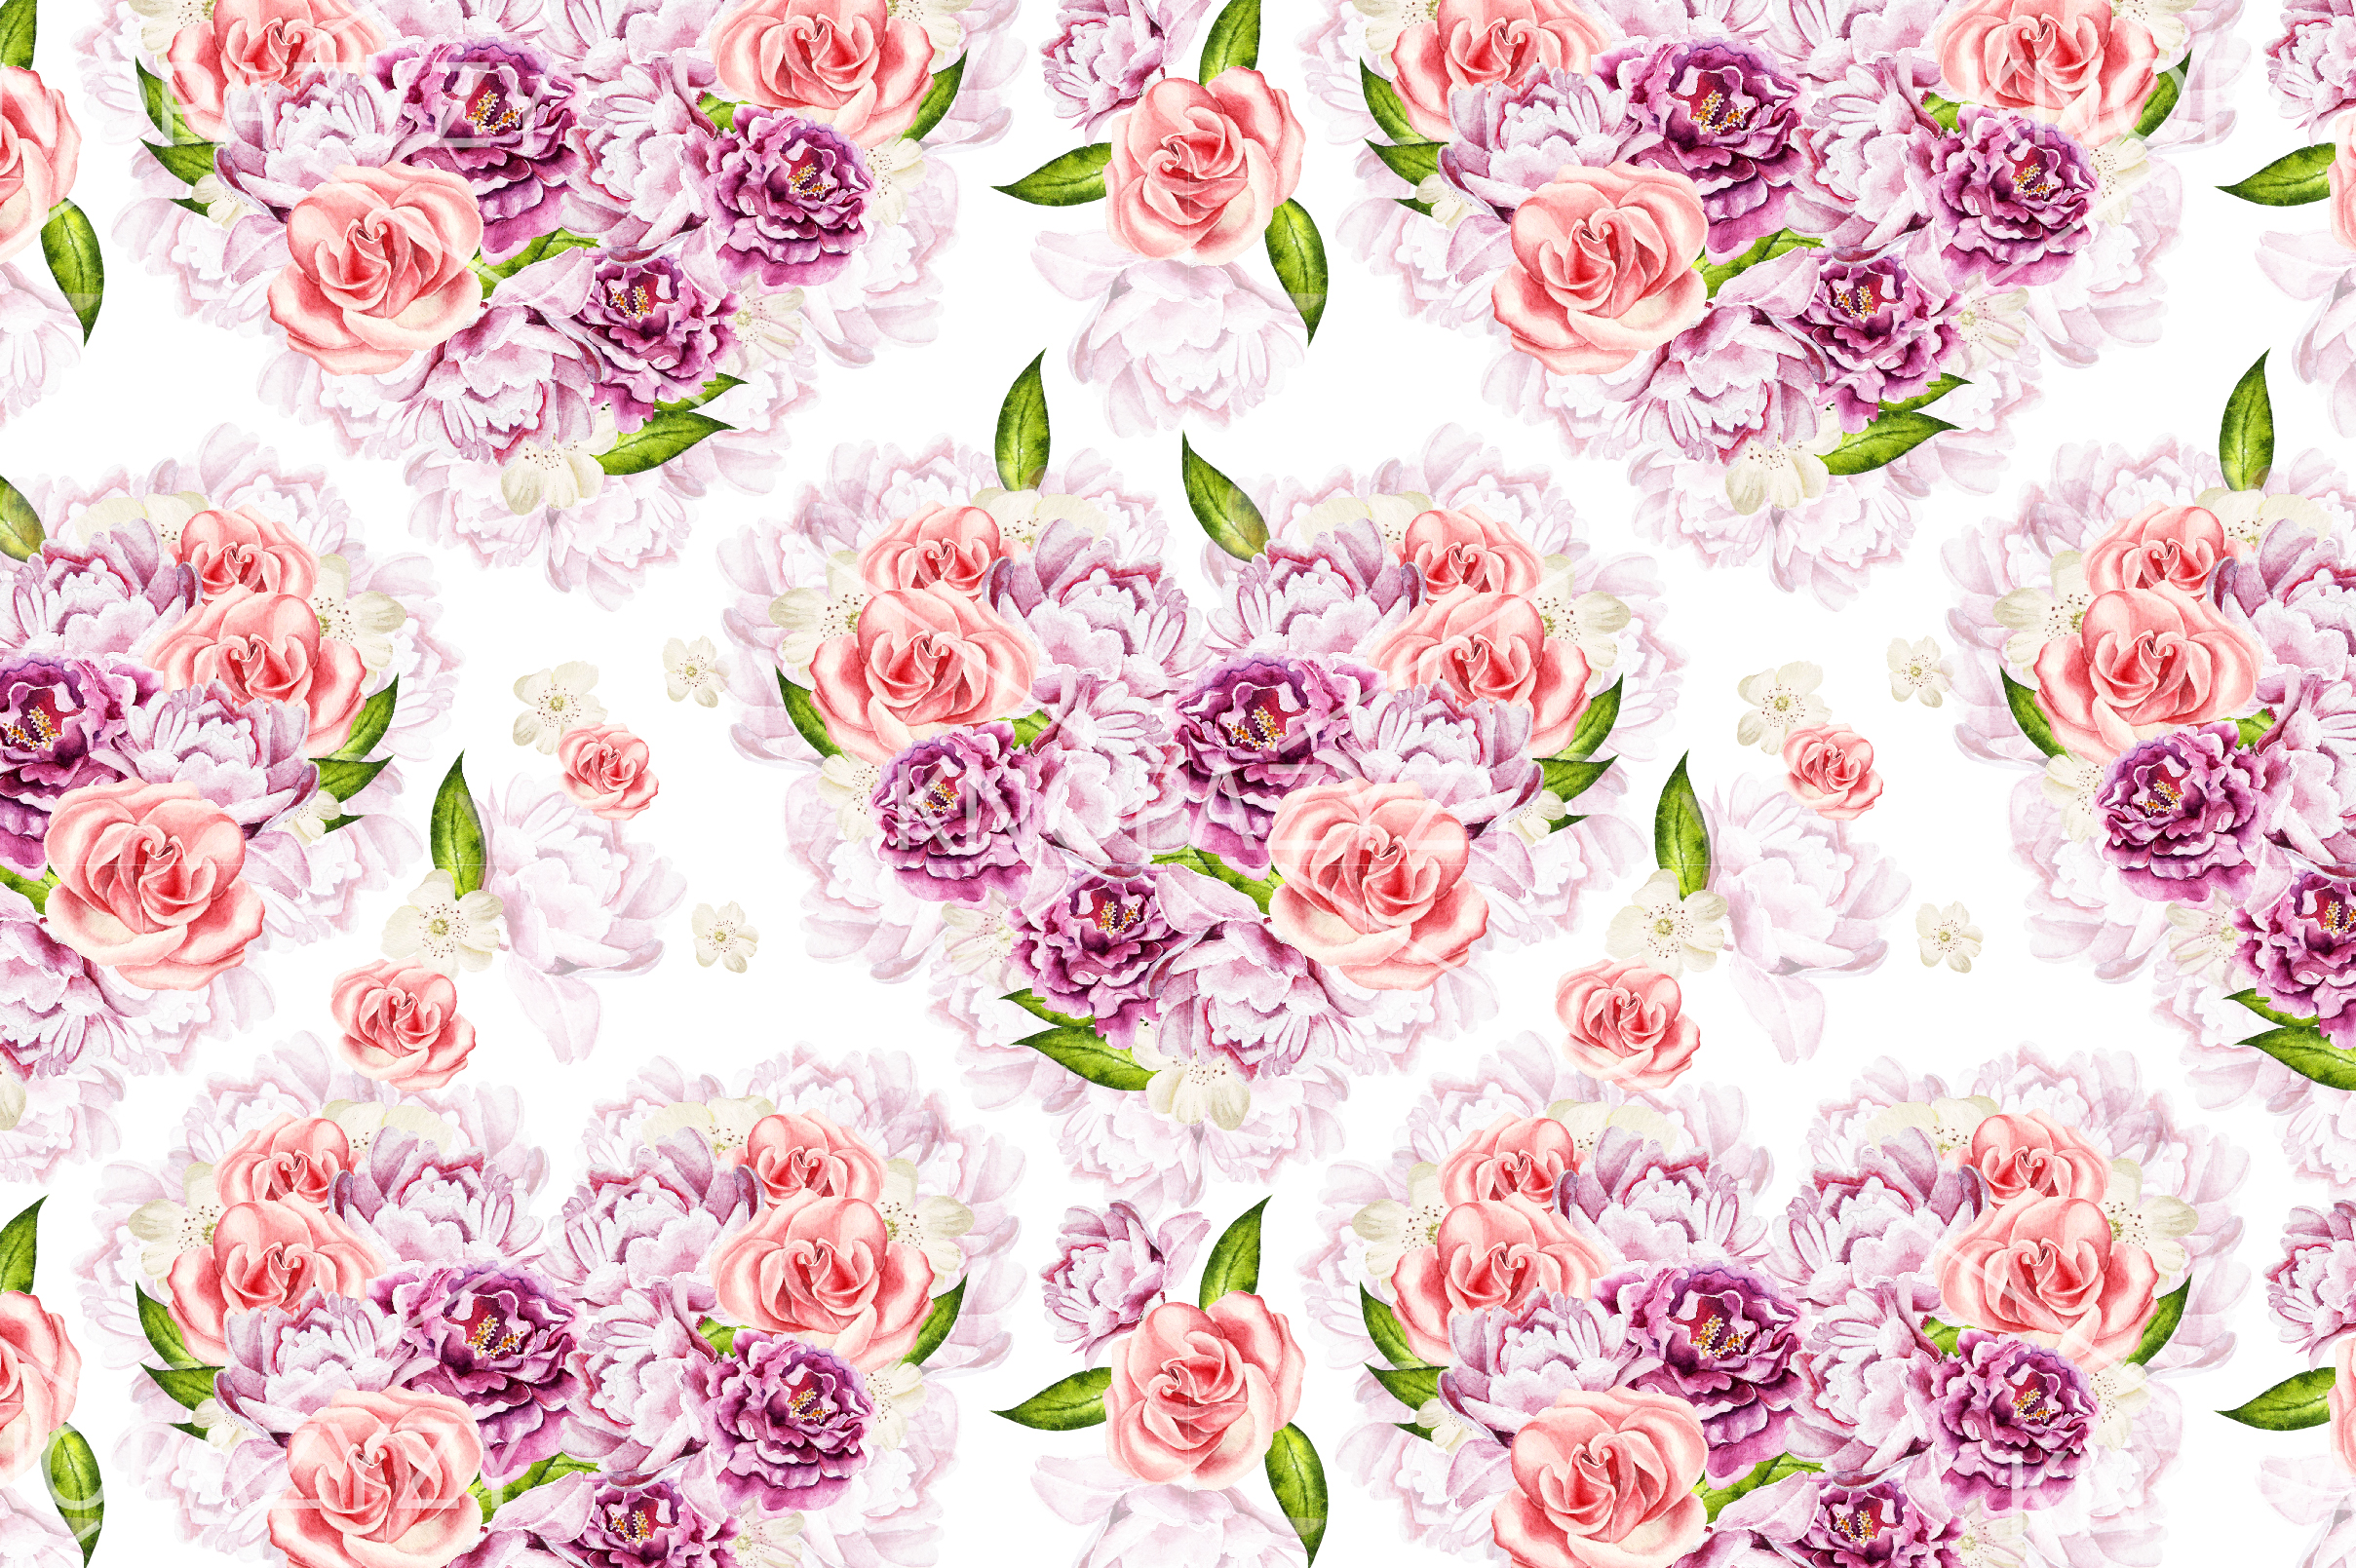 15 Hand Drawn Watercolor PATTERNS example image 13